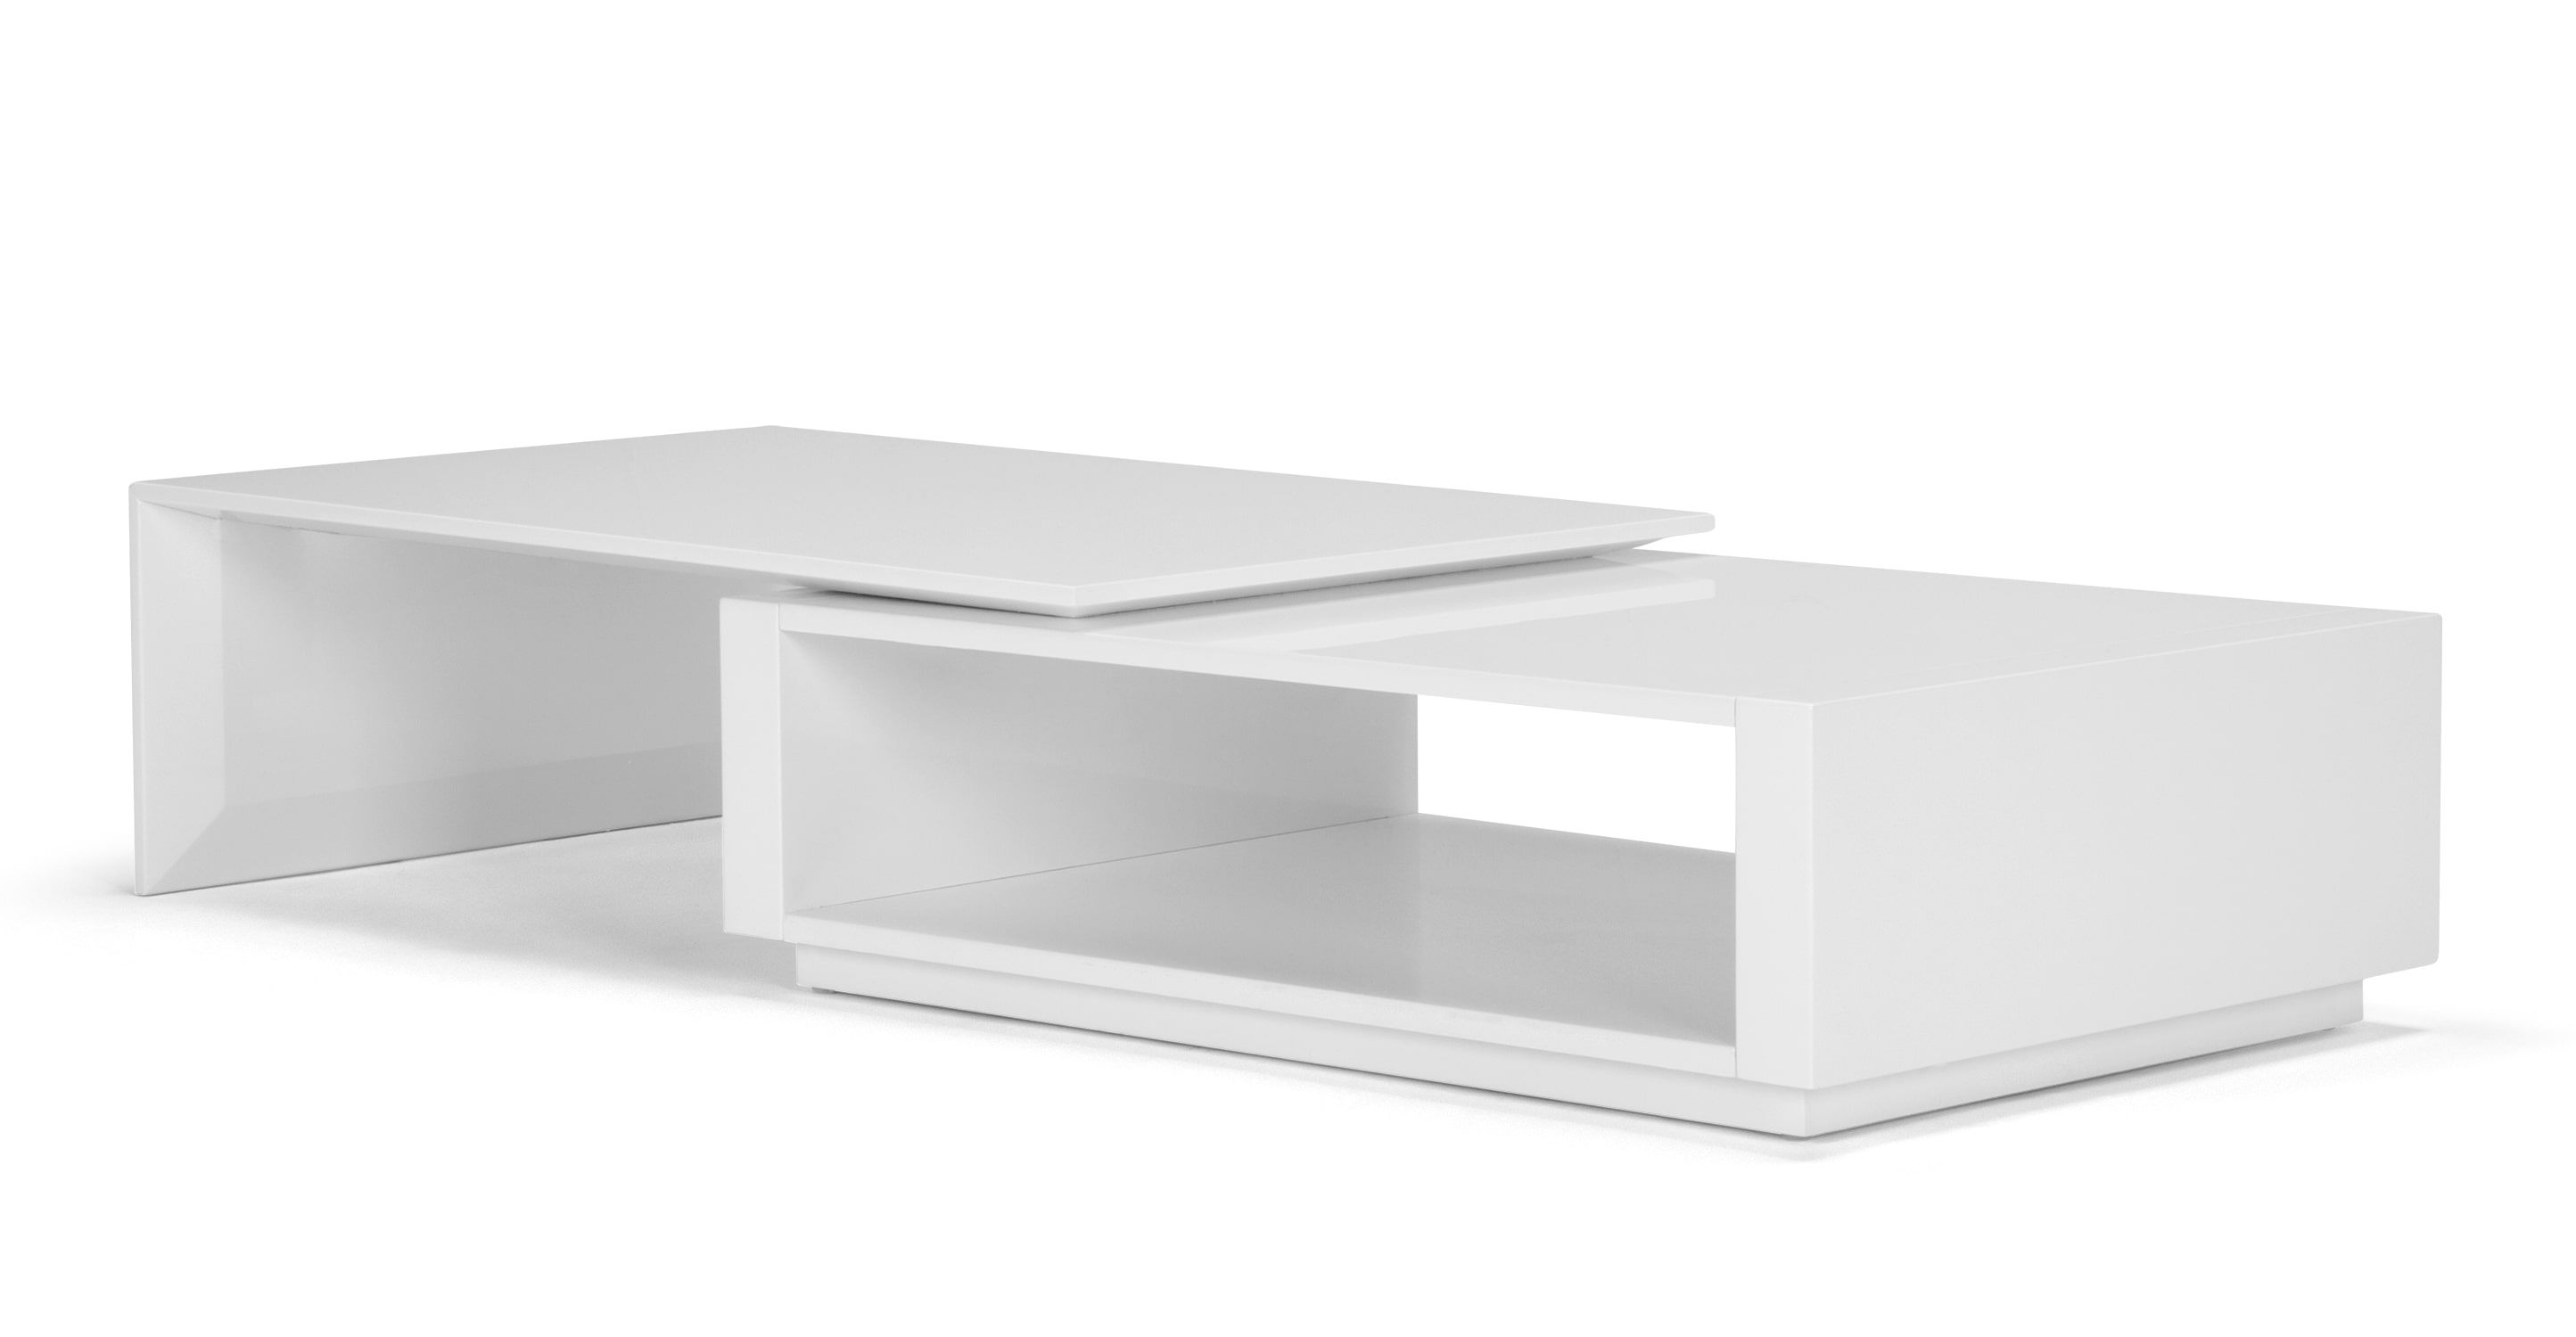 Couchtisch Postira Pin By Ladendirekt On Tische Table Extendable Coffee Table